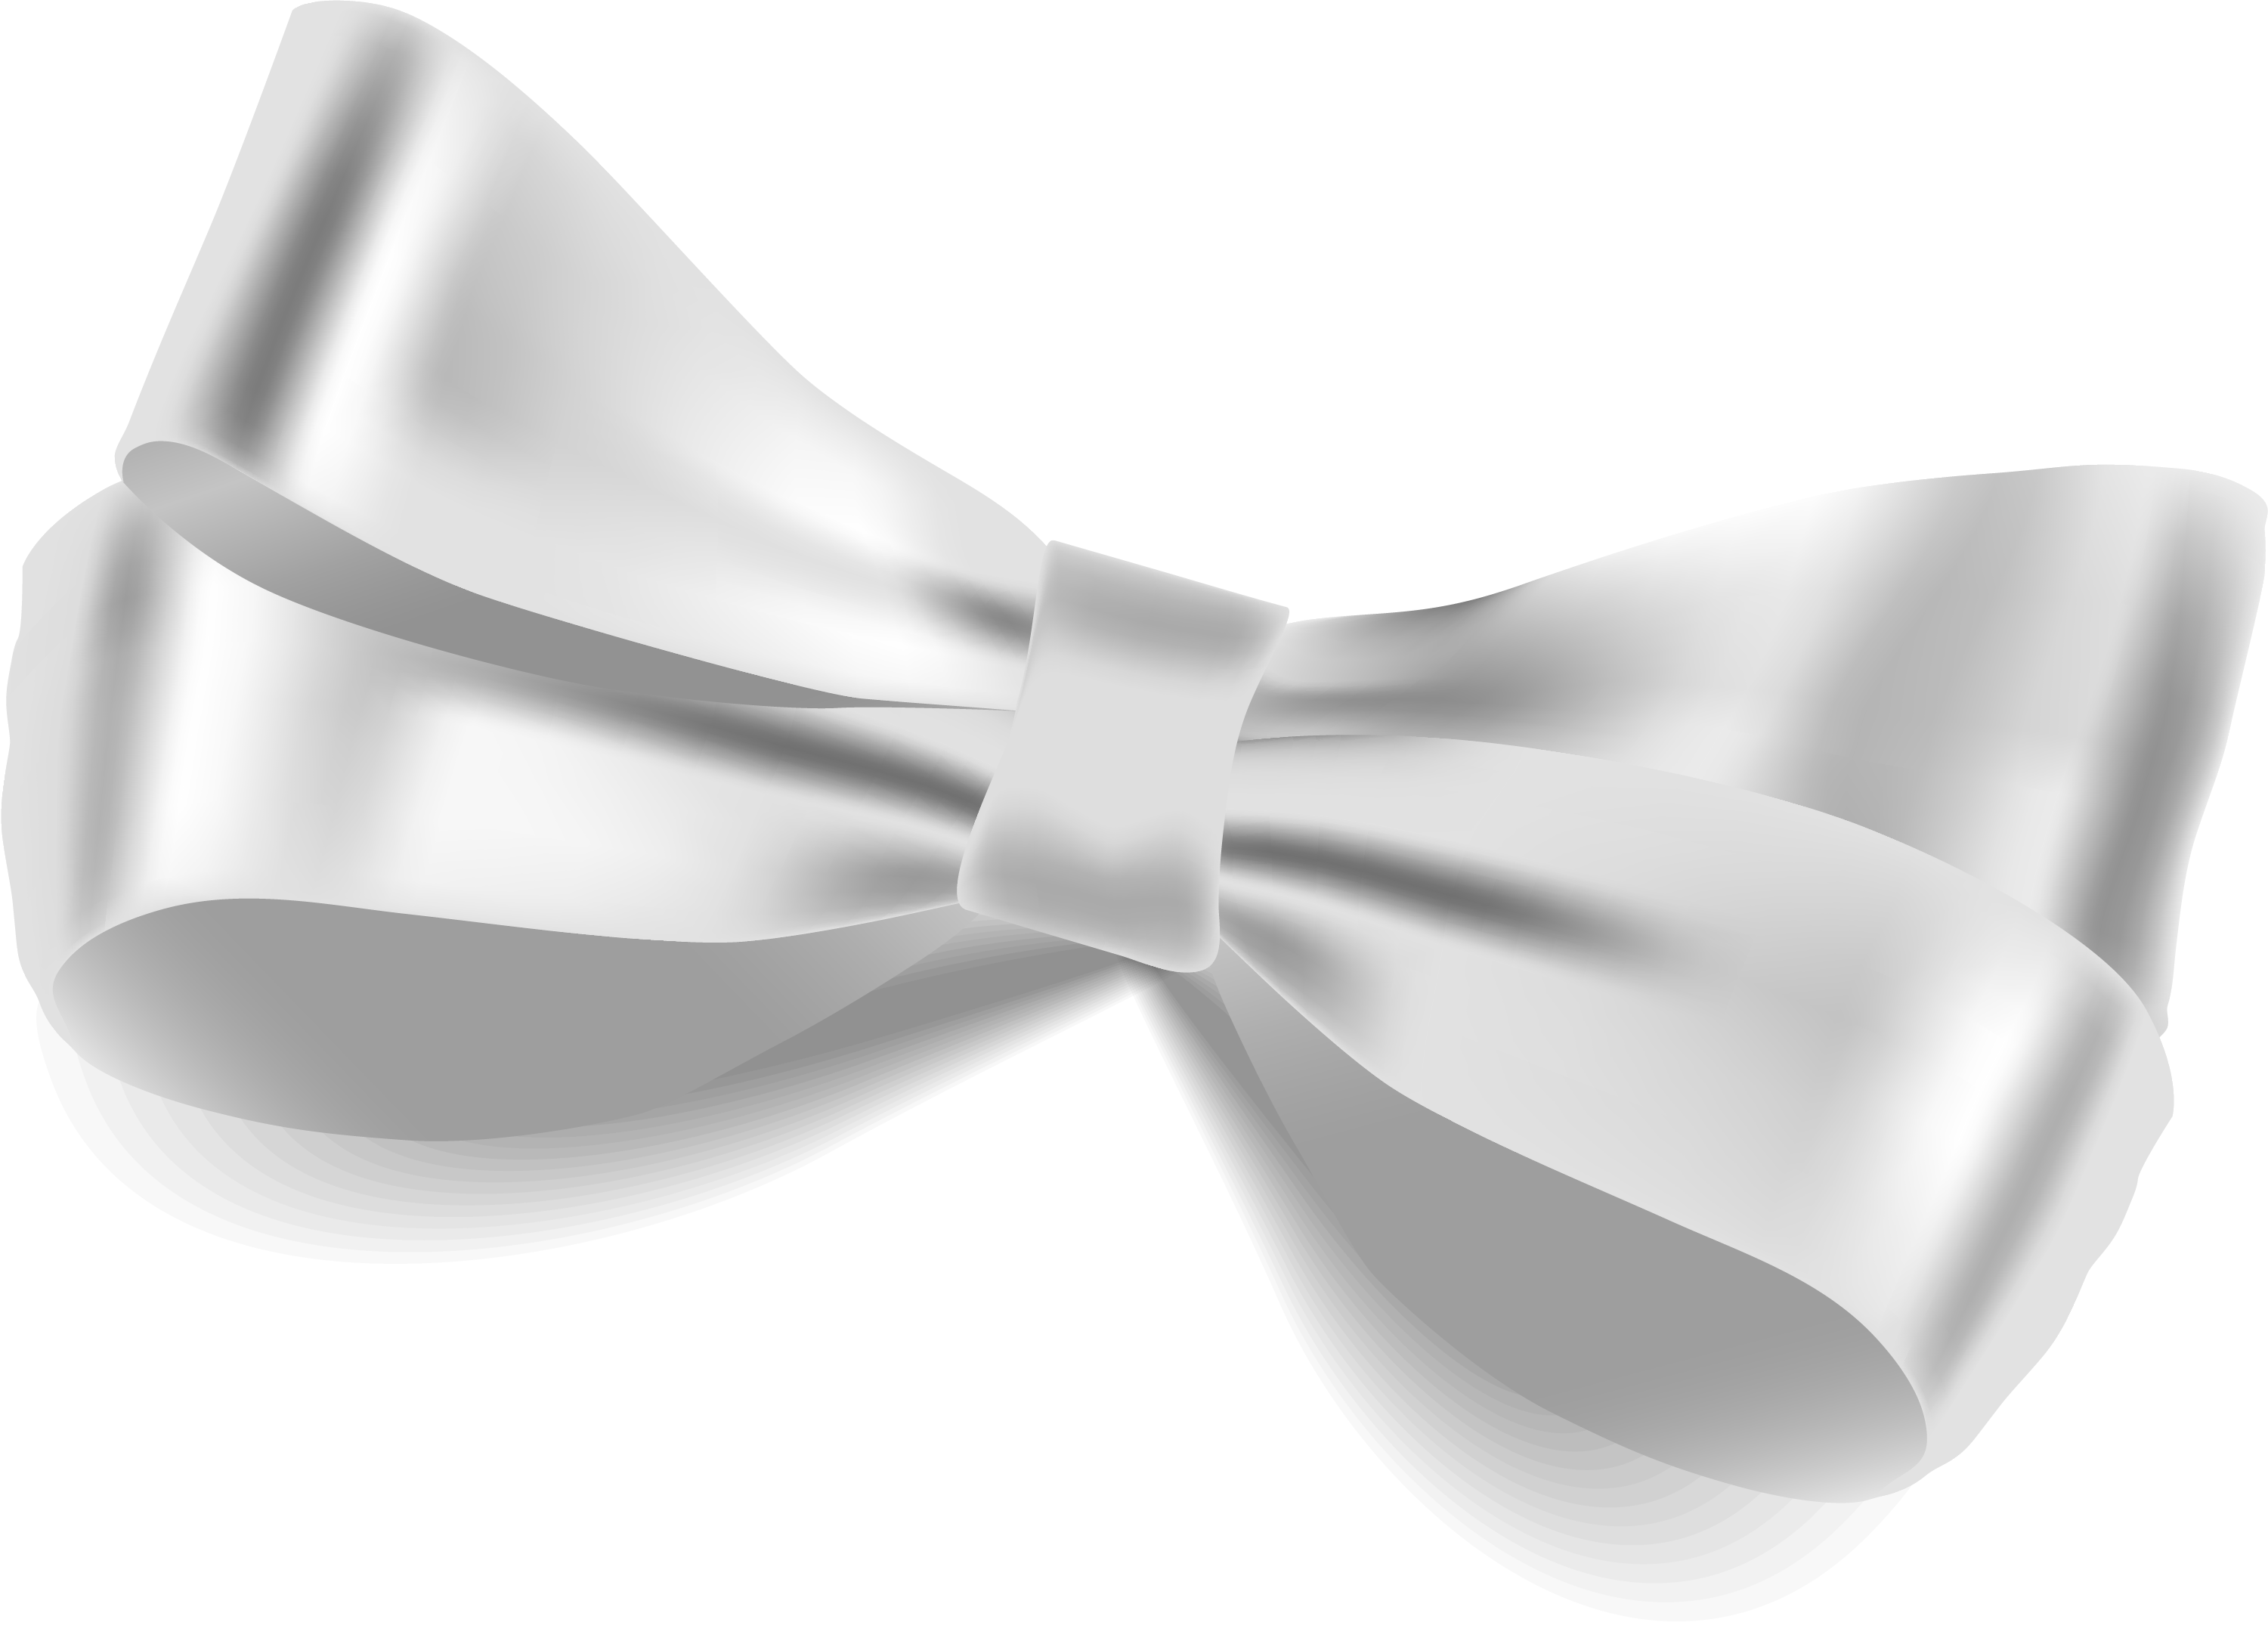 Bow tie Butterfly White Ribbon.